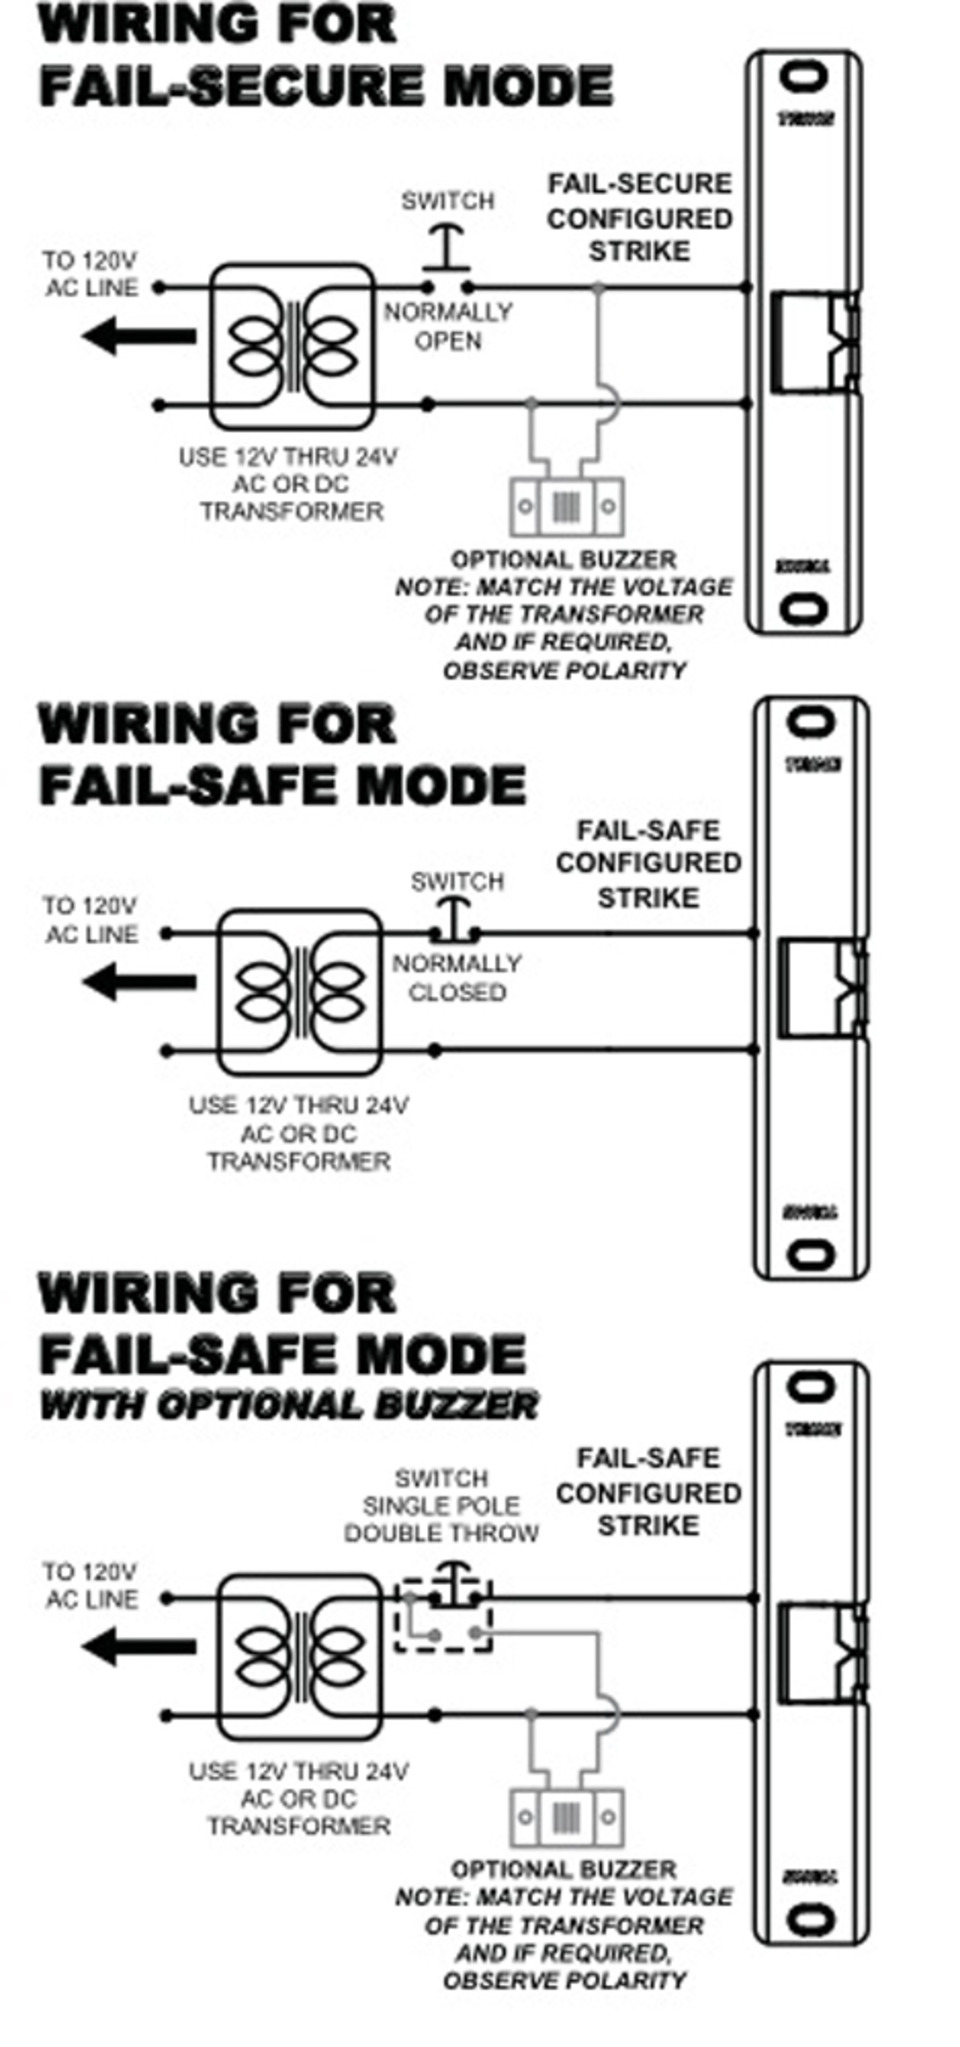 Electric Strike Wiring Diagram from cdn.locksmithledger.com